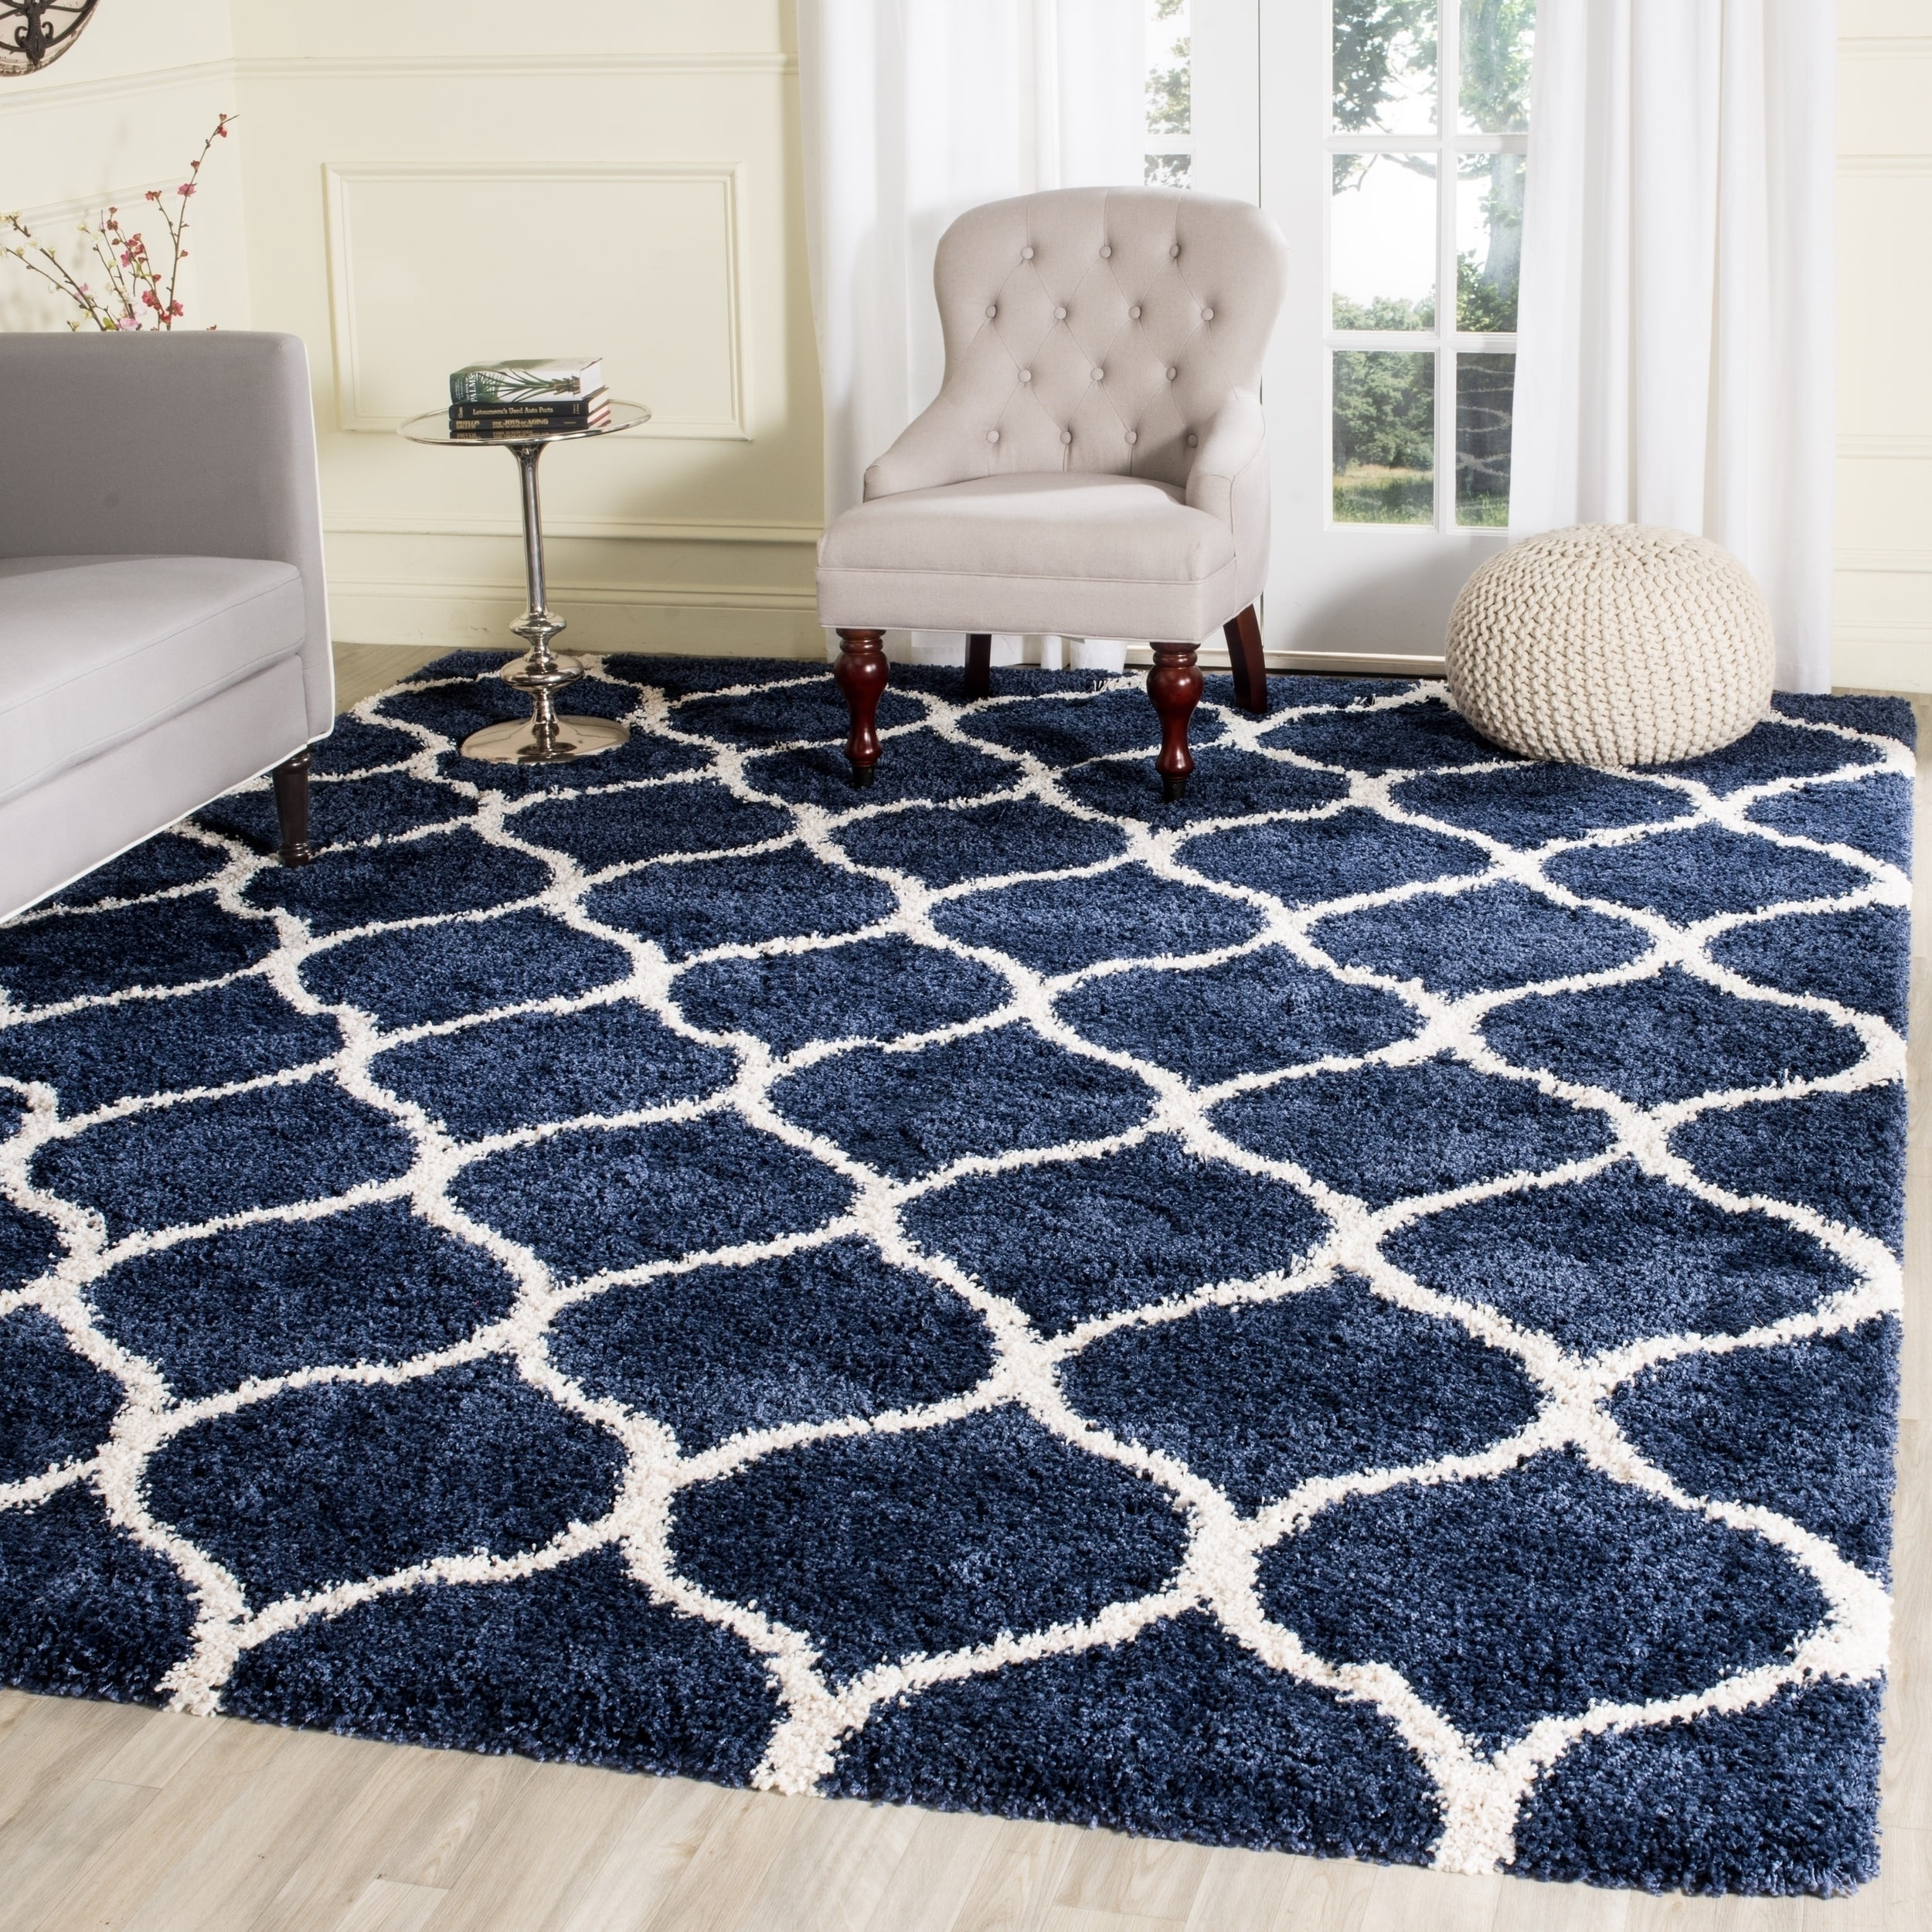 Safavieh Hudson Modern Ogee Navy Ivory Large Area Rug 11 X 15 On Free Shipping Today 11721641